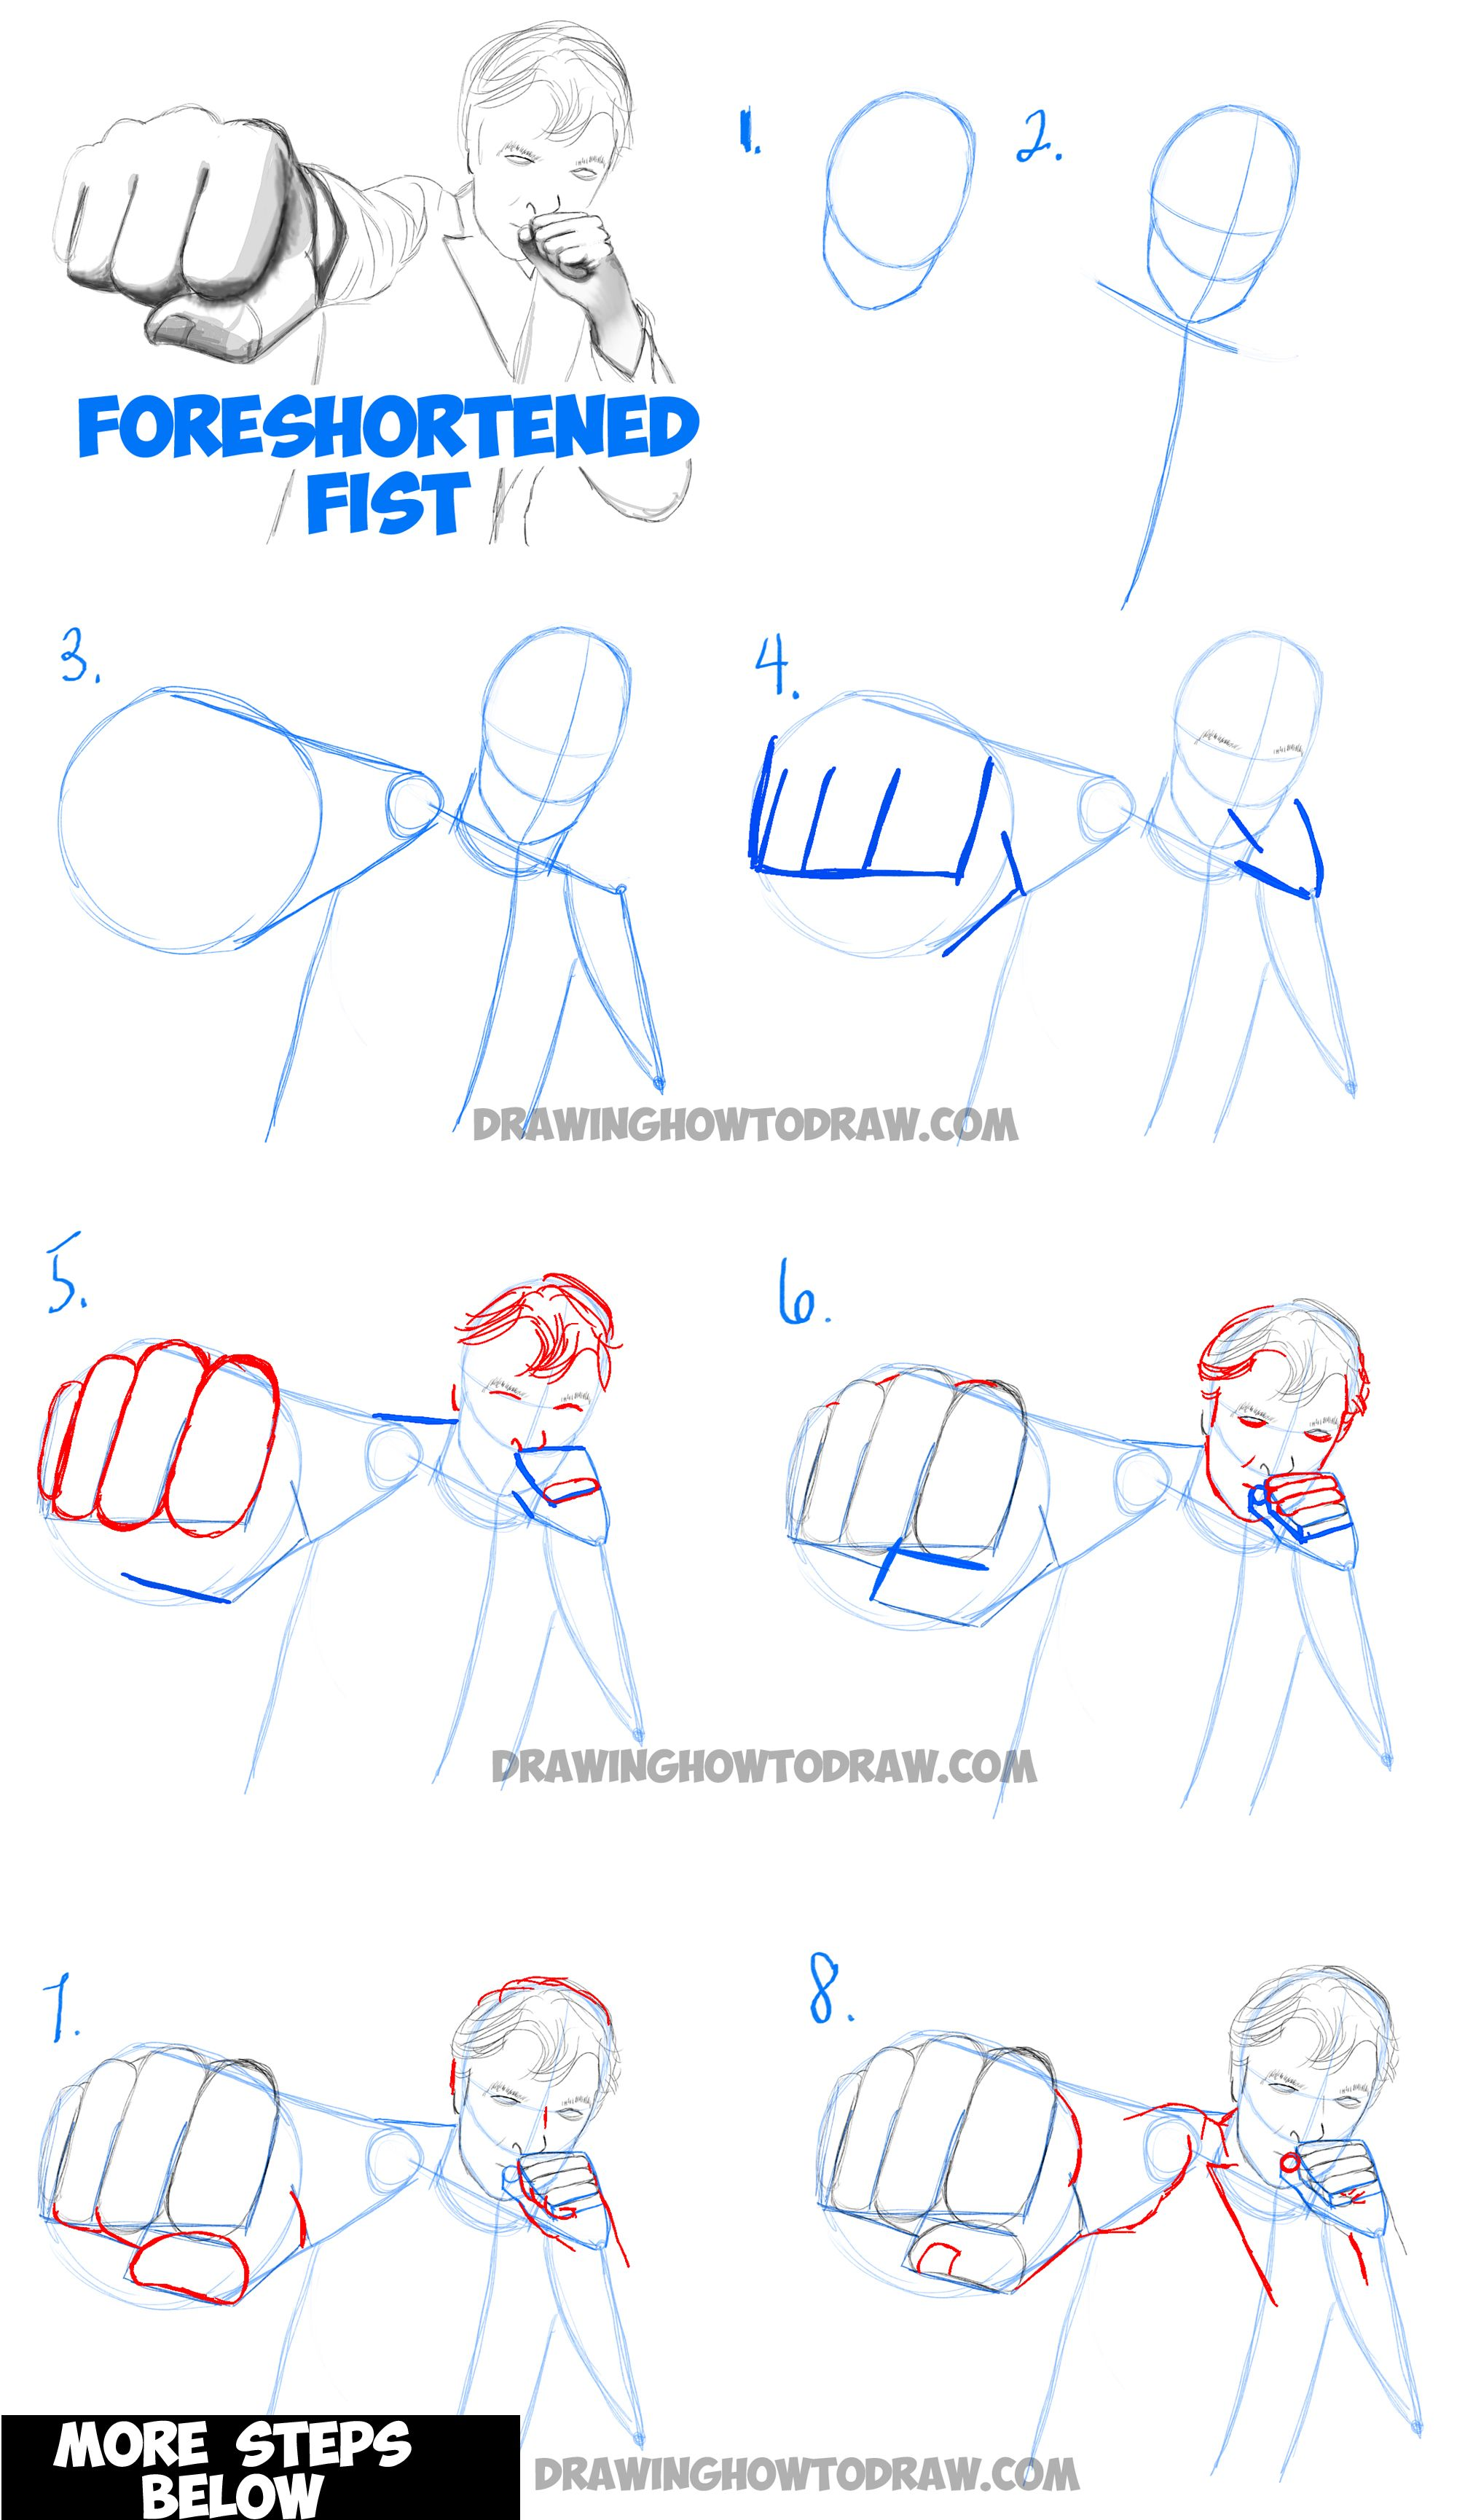 How To Draw Foreshortened Fists Foreshortening Hands How To Draw Step By Step Drawing Tutorials Drawing Tutorial Step By Step Drawing Perspective Drawing Lessons